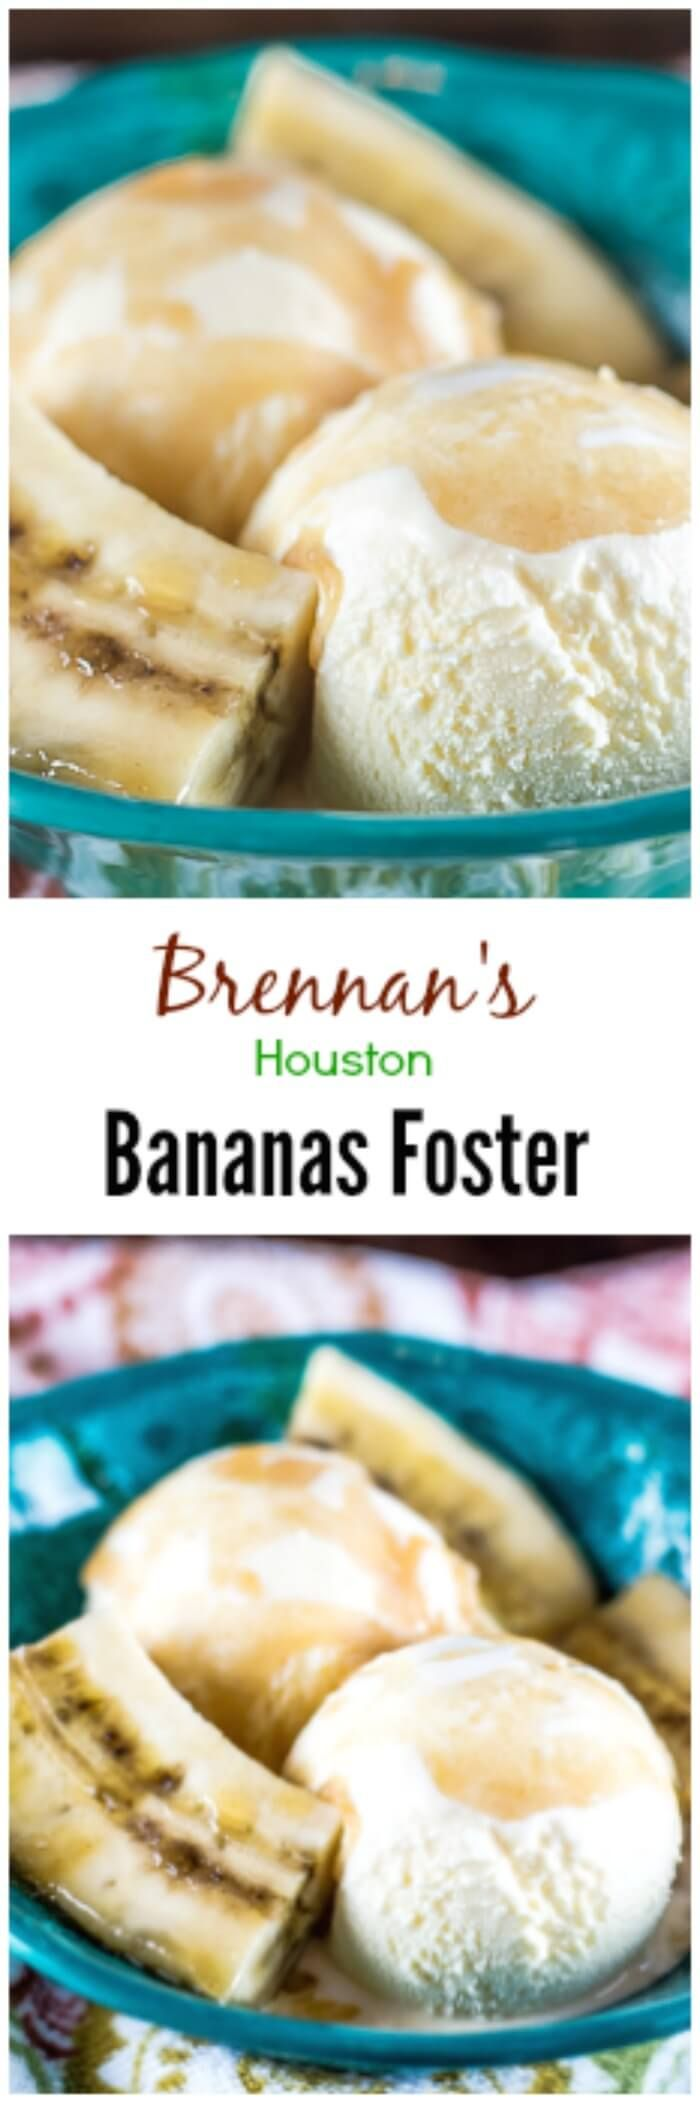 This Brennan's Houston Bananas Foster recipe, with fresh bananas and ice cream, covered in a buttery, brown sugar, rum-laced sauce, is from the famous Creole fine dining restaurant, Brennan's, in Houston, Texas. via @flavormosaic